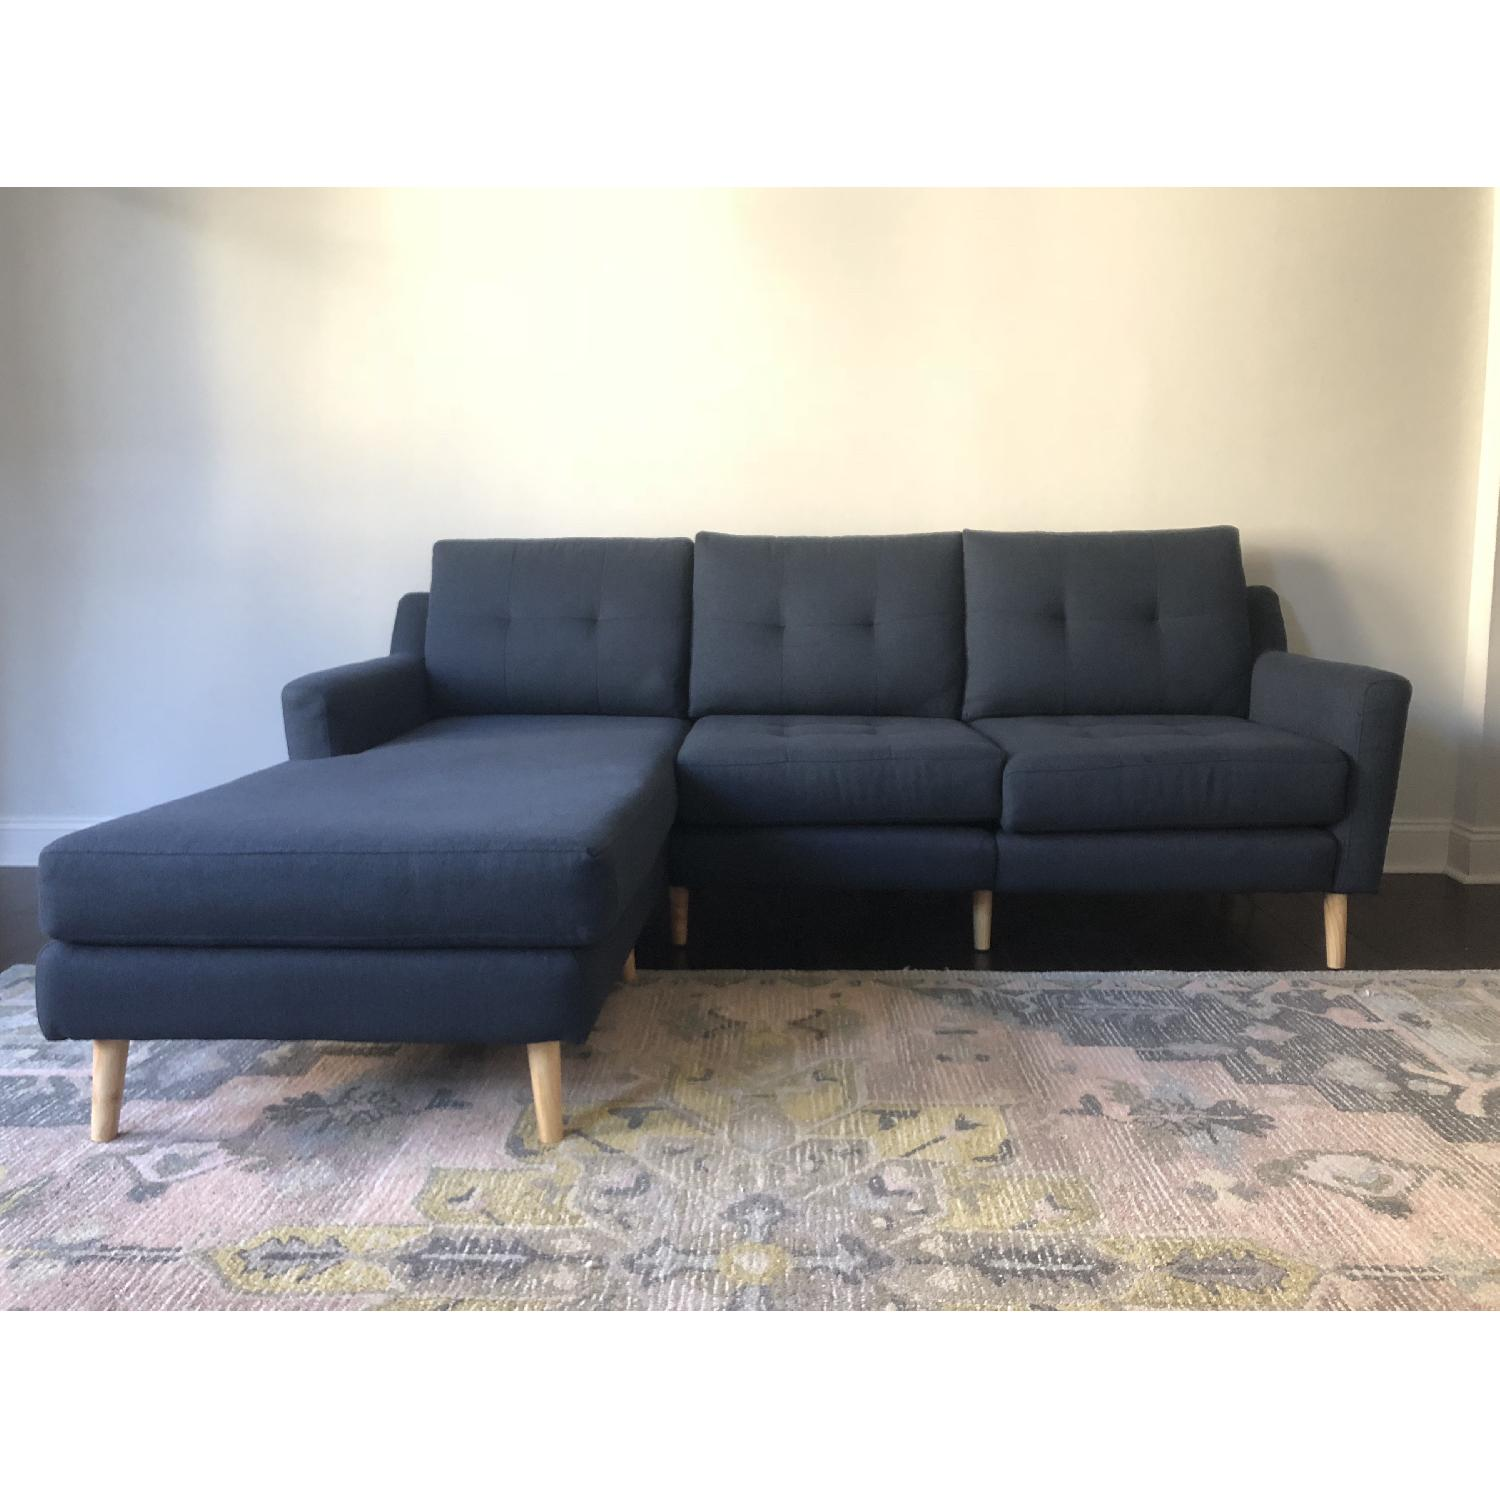 Burrow Nomad Sectional Sofa w/ Chaise - image-3